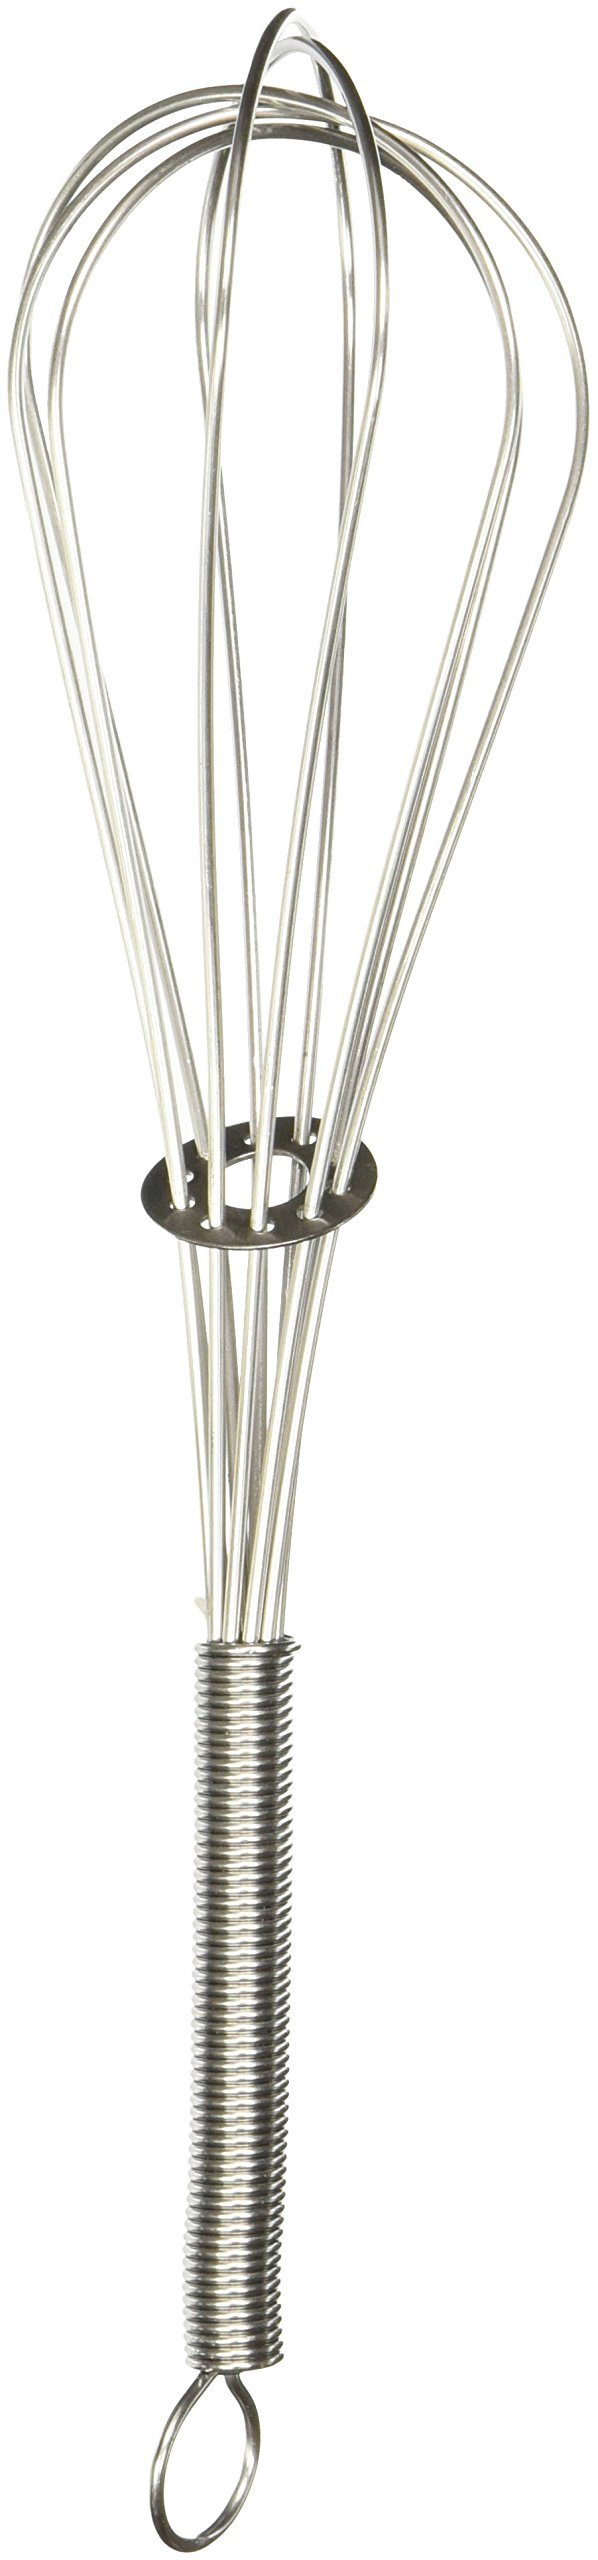 Whisk Stainless Steel 8 In